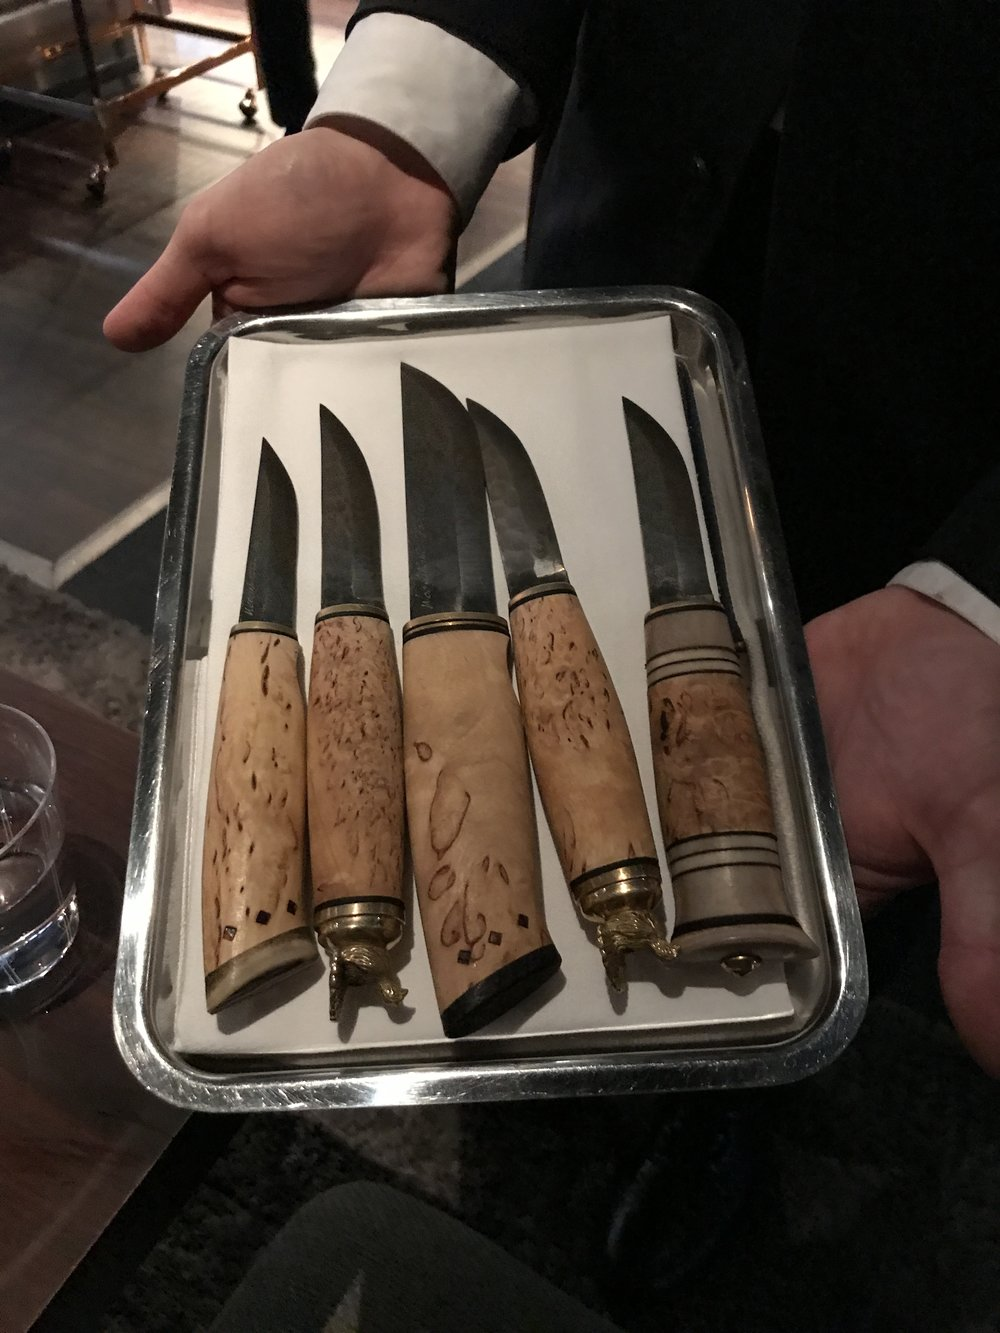 Which knife did I choose??!